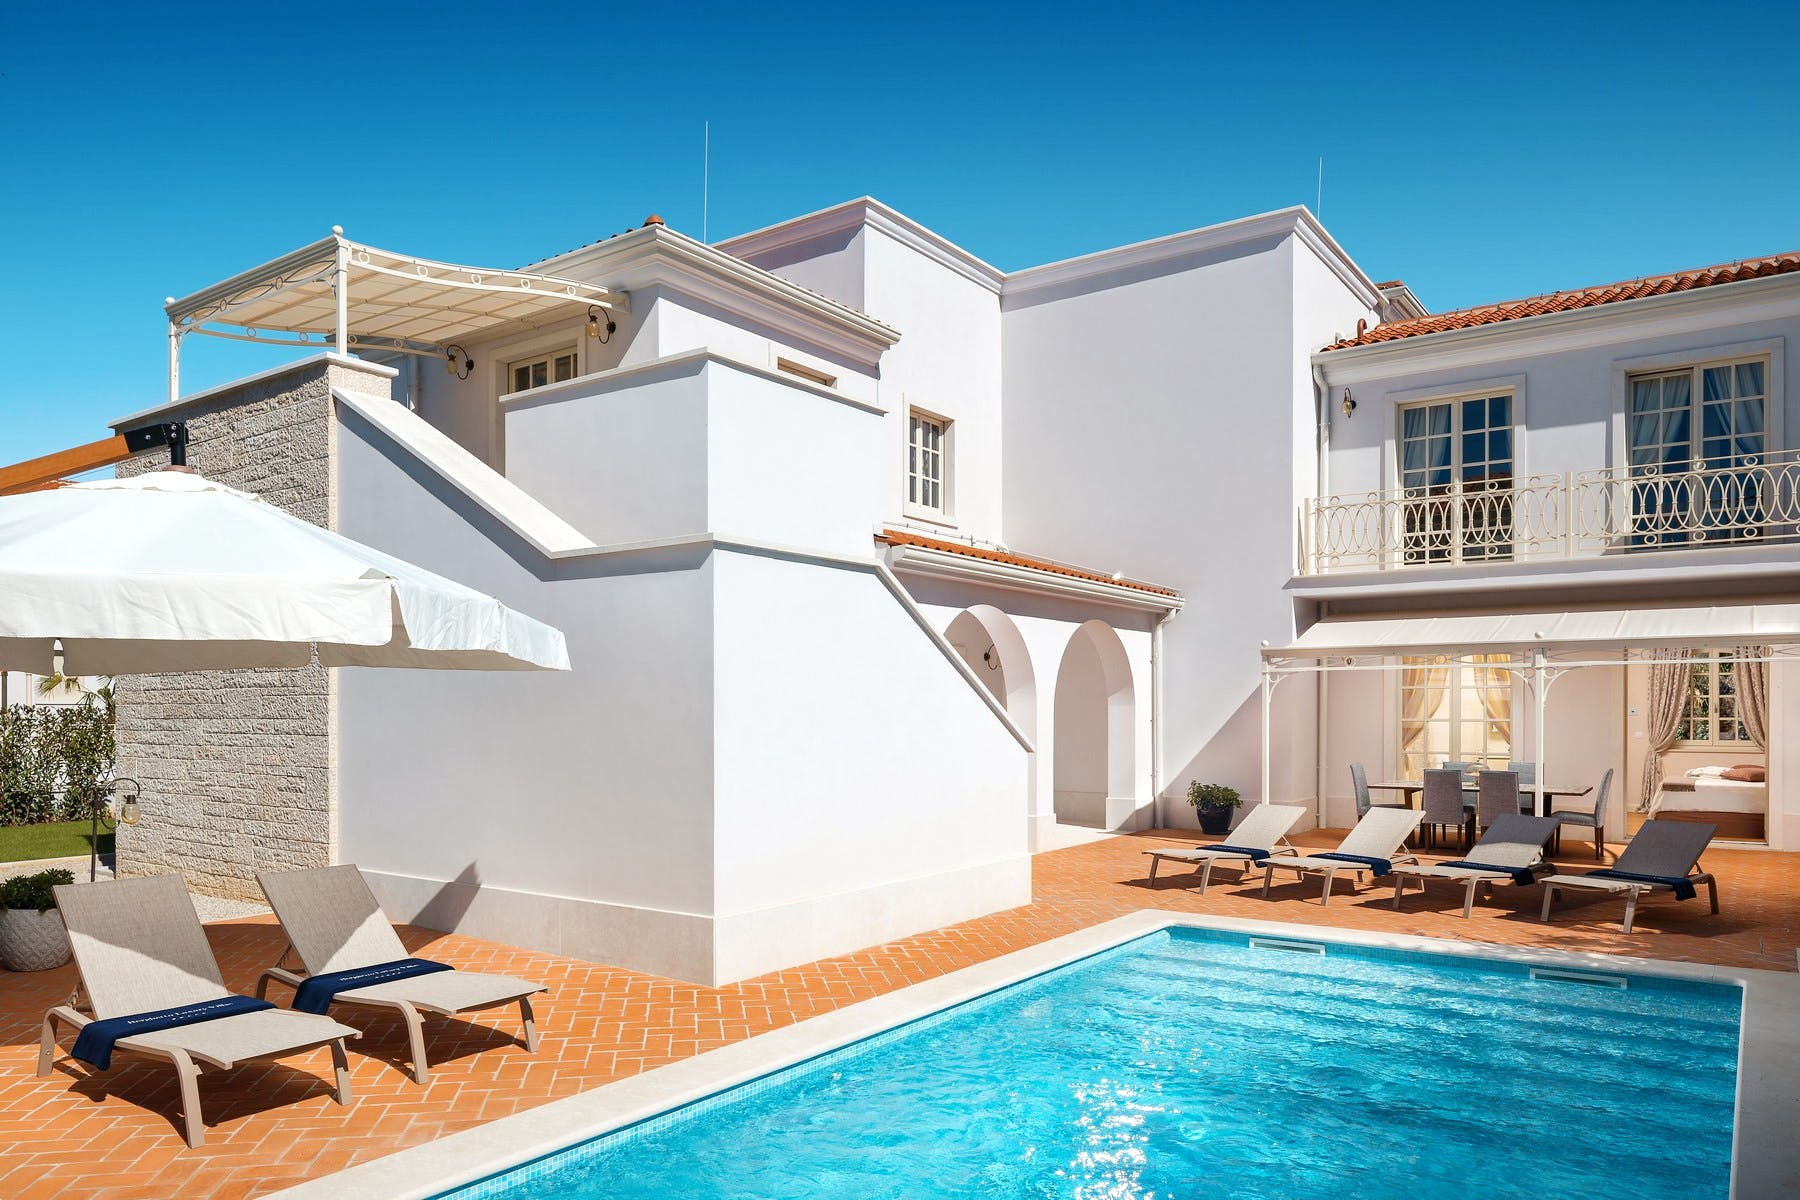 Villa for rent with swimming pool